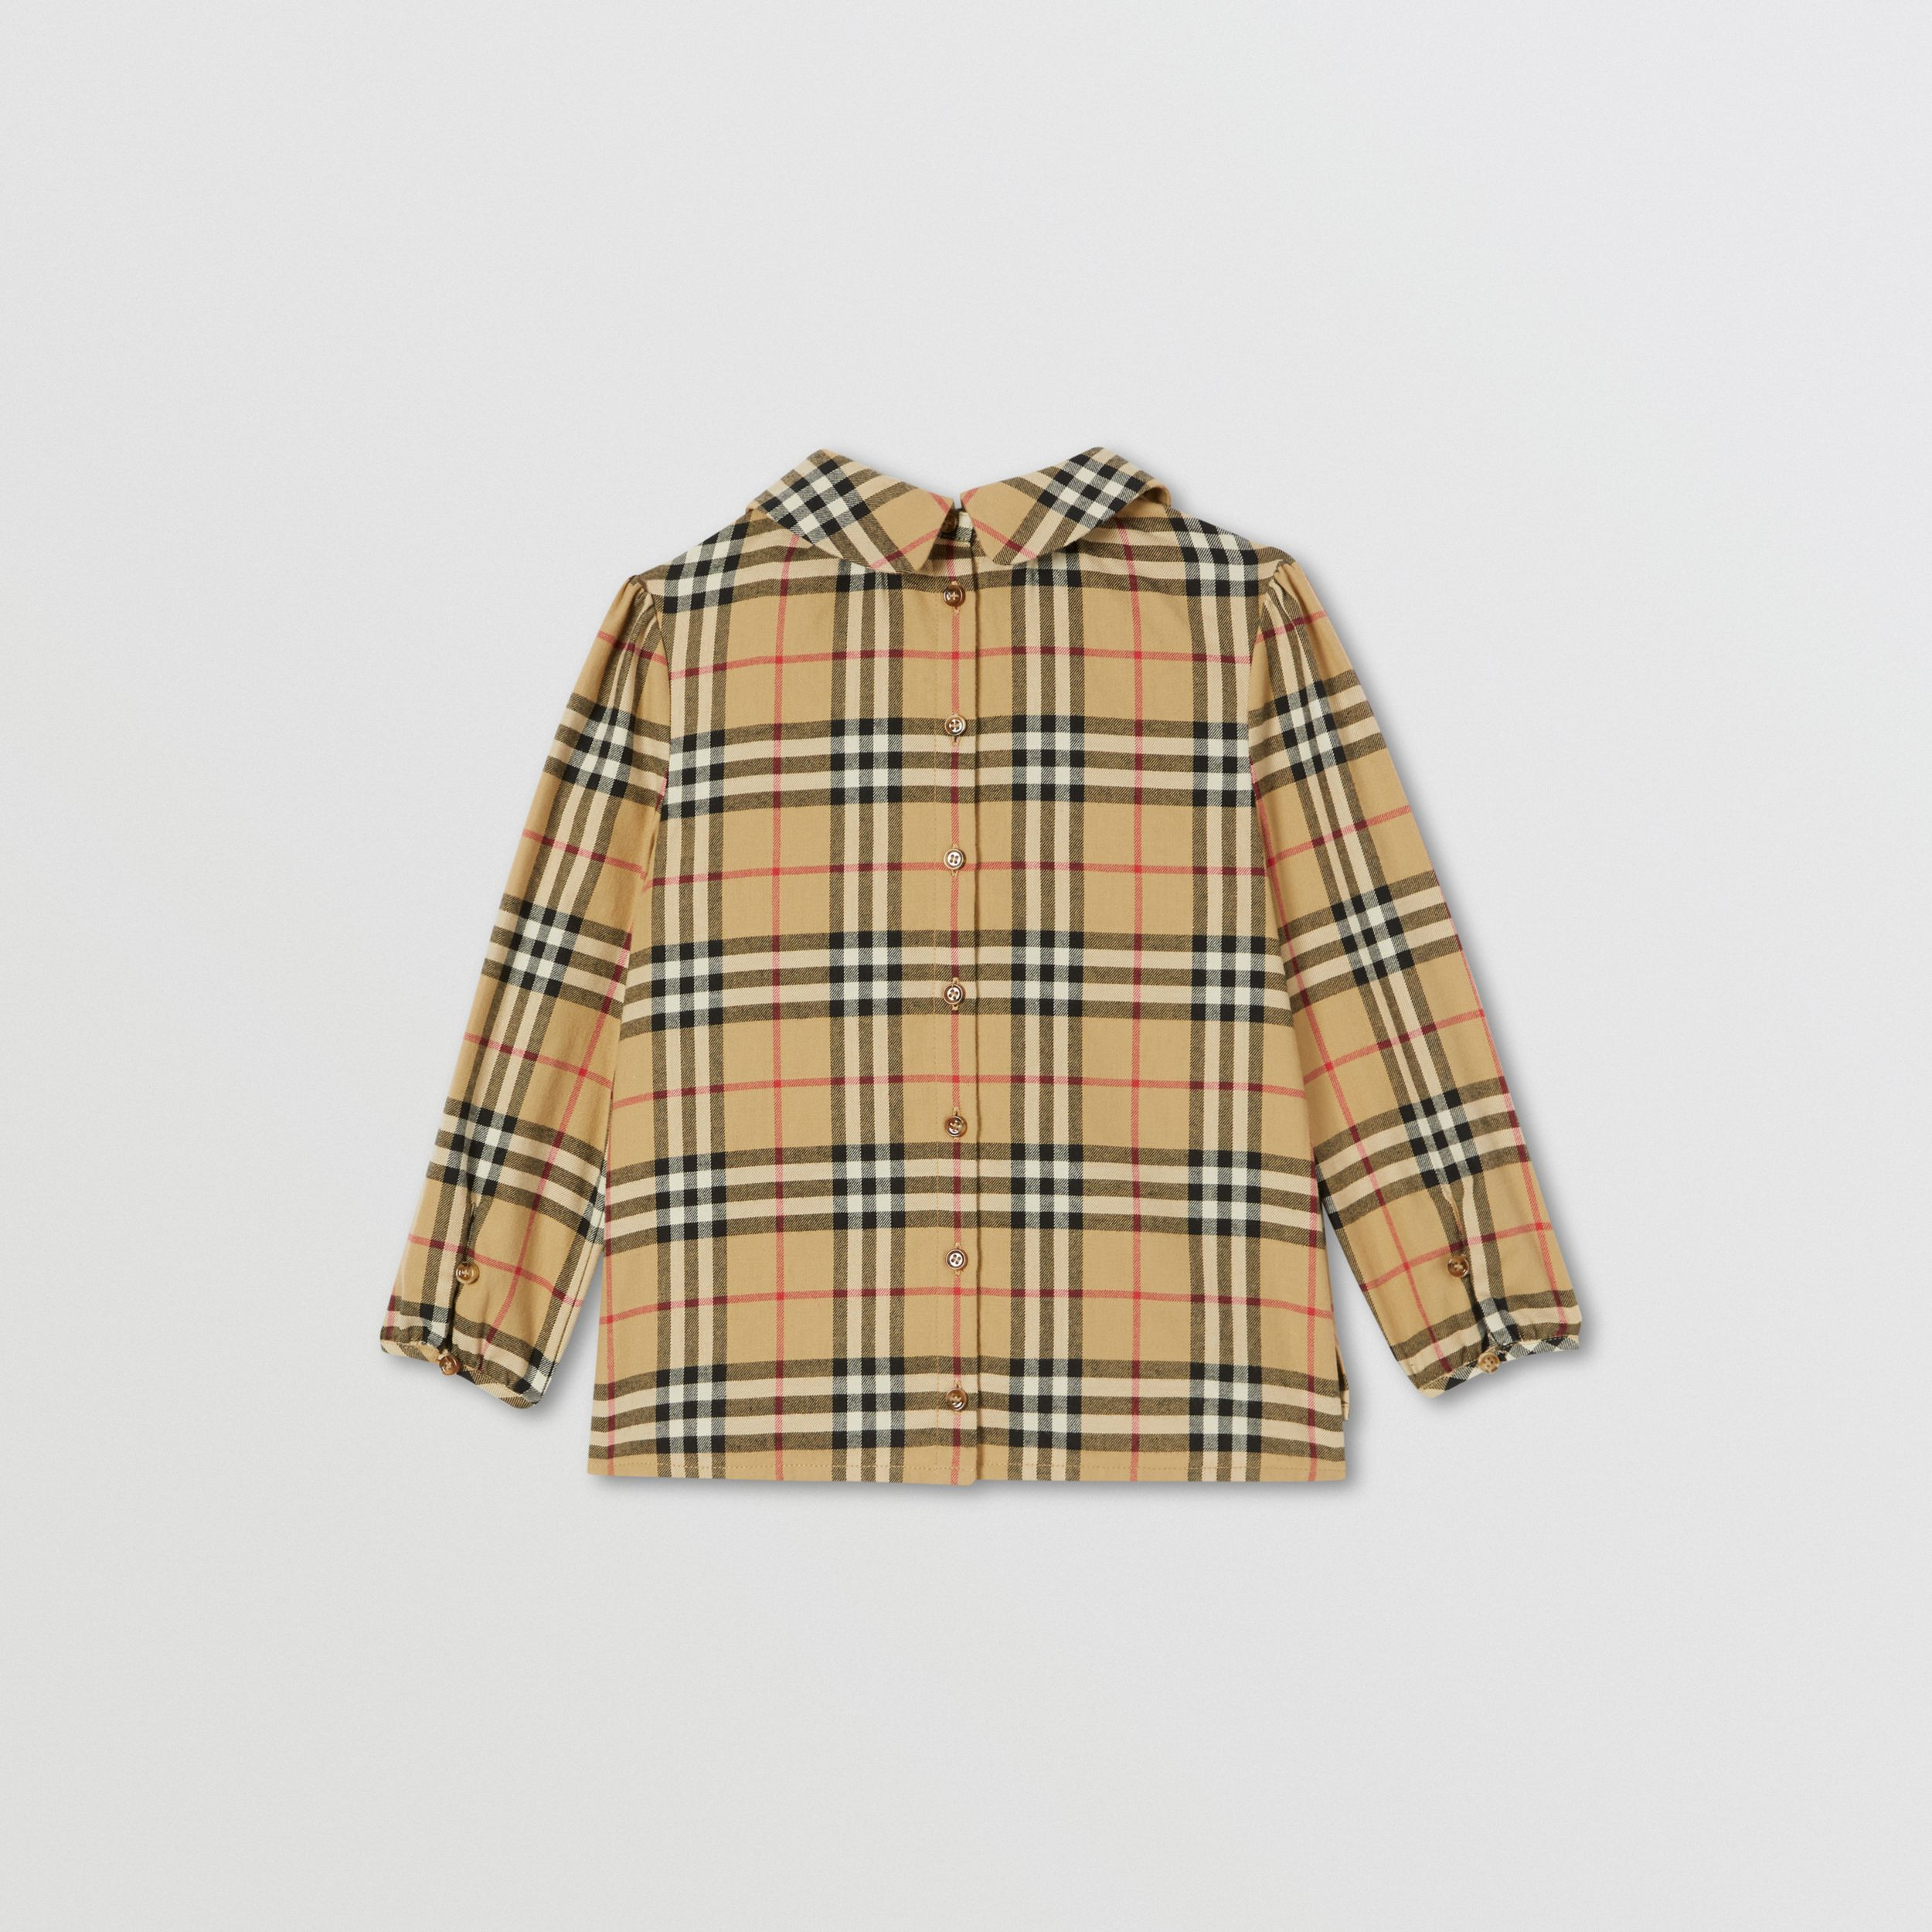 Peter Pan Collar Vintage Check Cotton Blouse | Burberry Singapore - 4